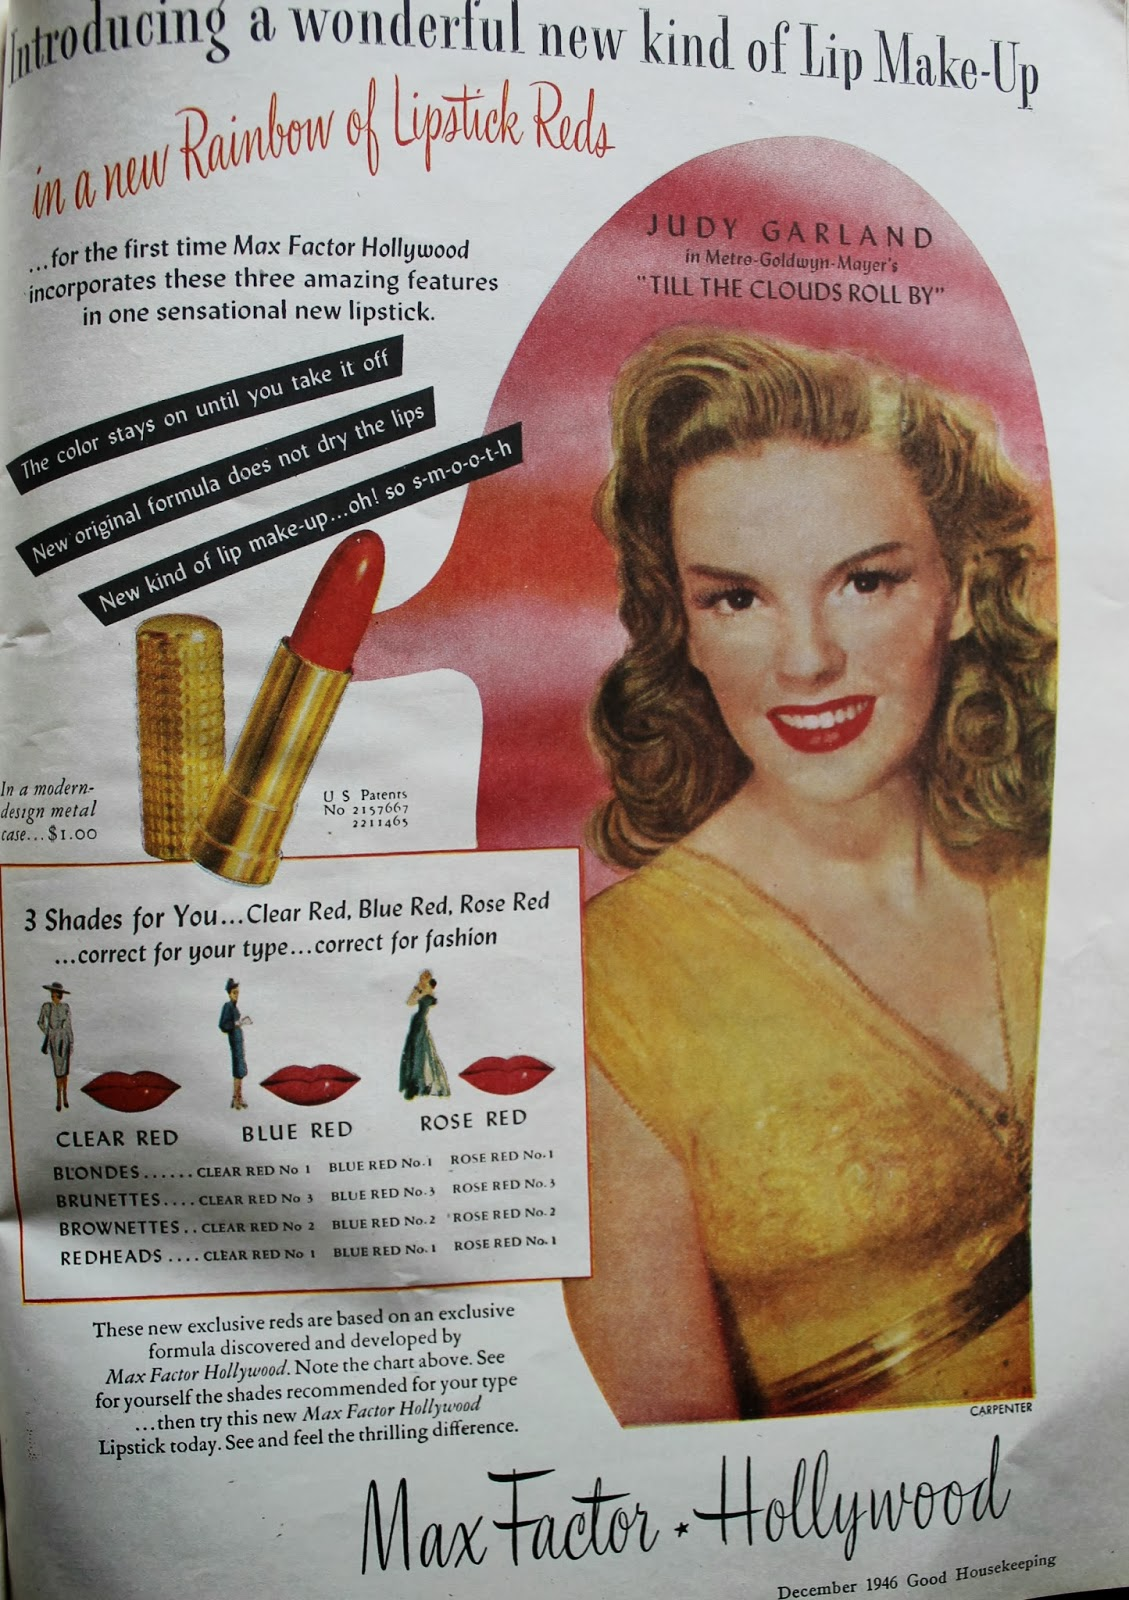 A Little Bit of Everything: Good Housekeeping - December 1946